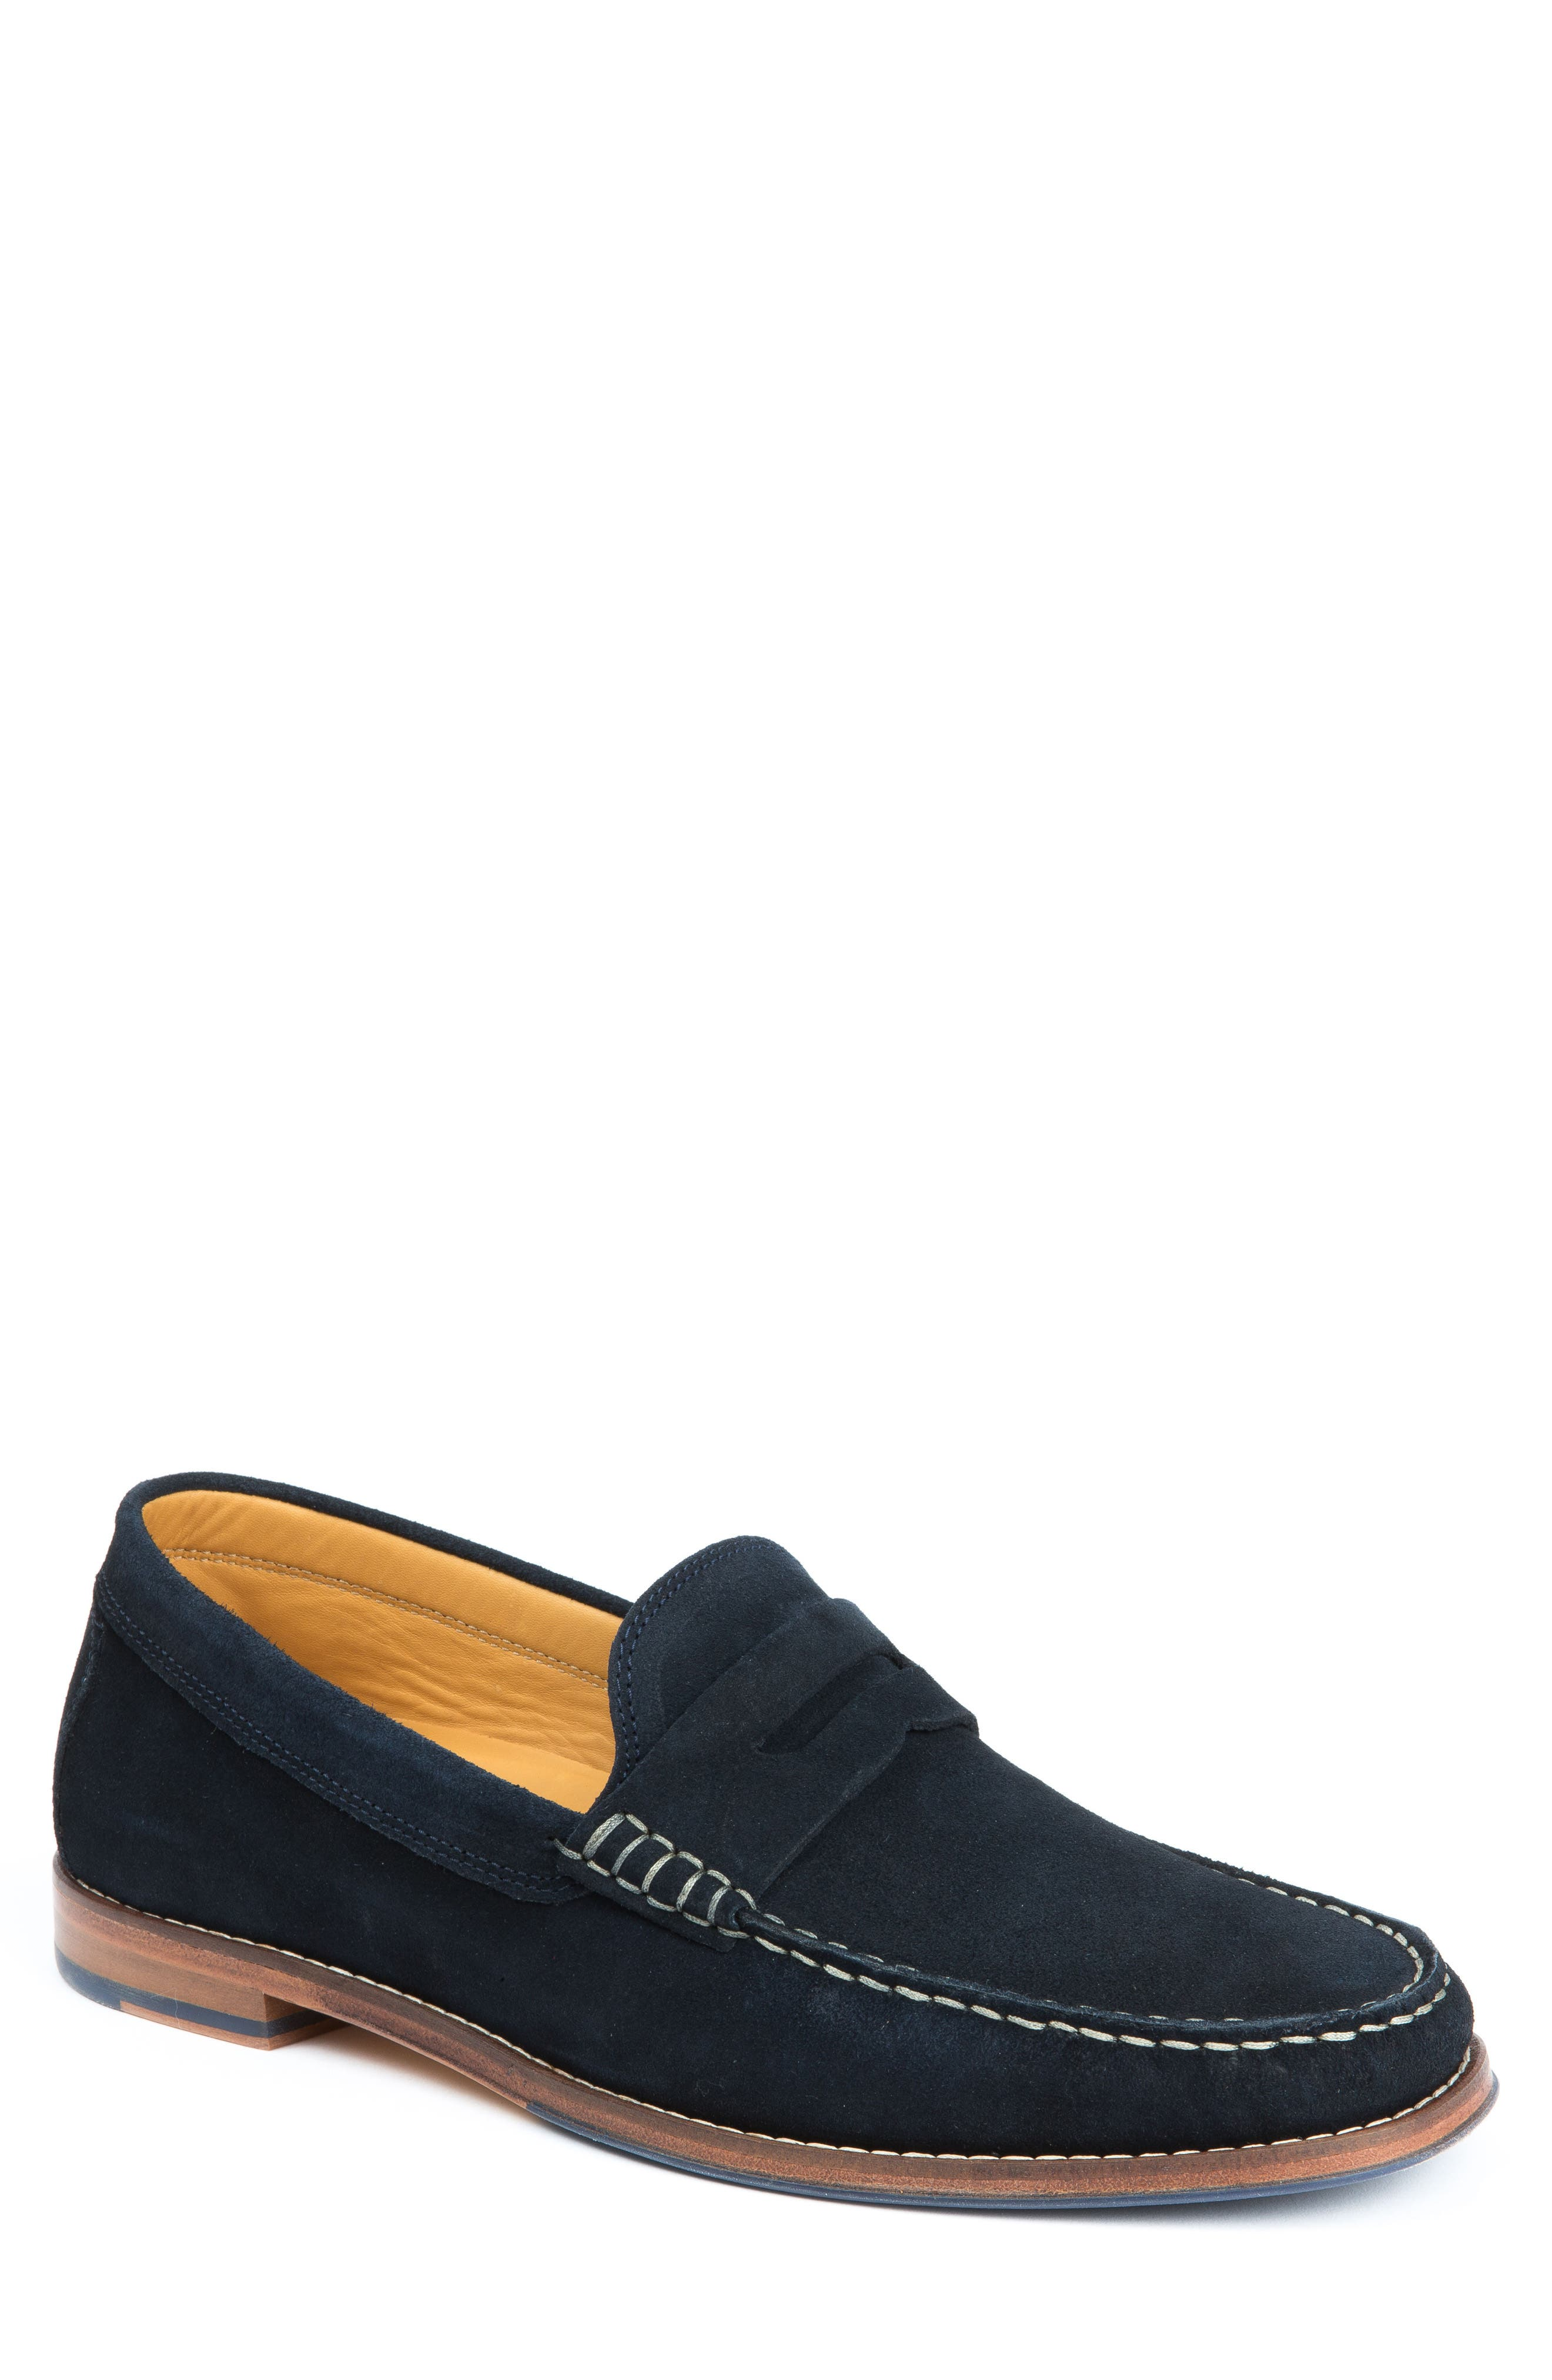 Ripleys Penny Loafer,                         Main,                         color, Navy Suede